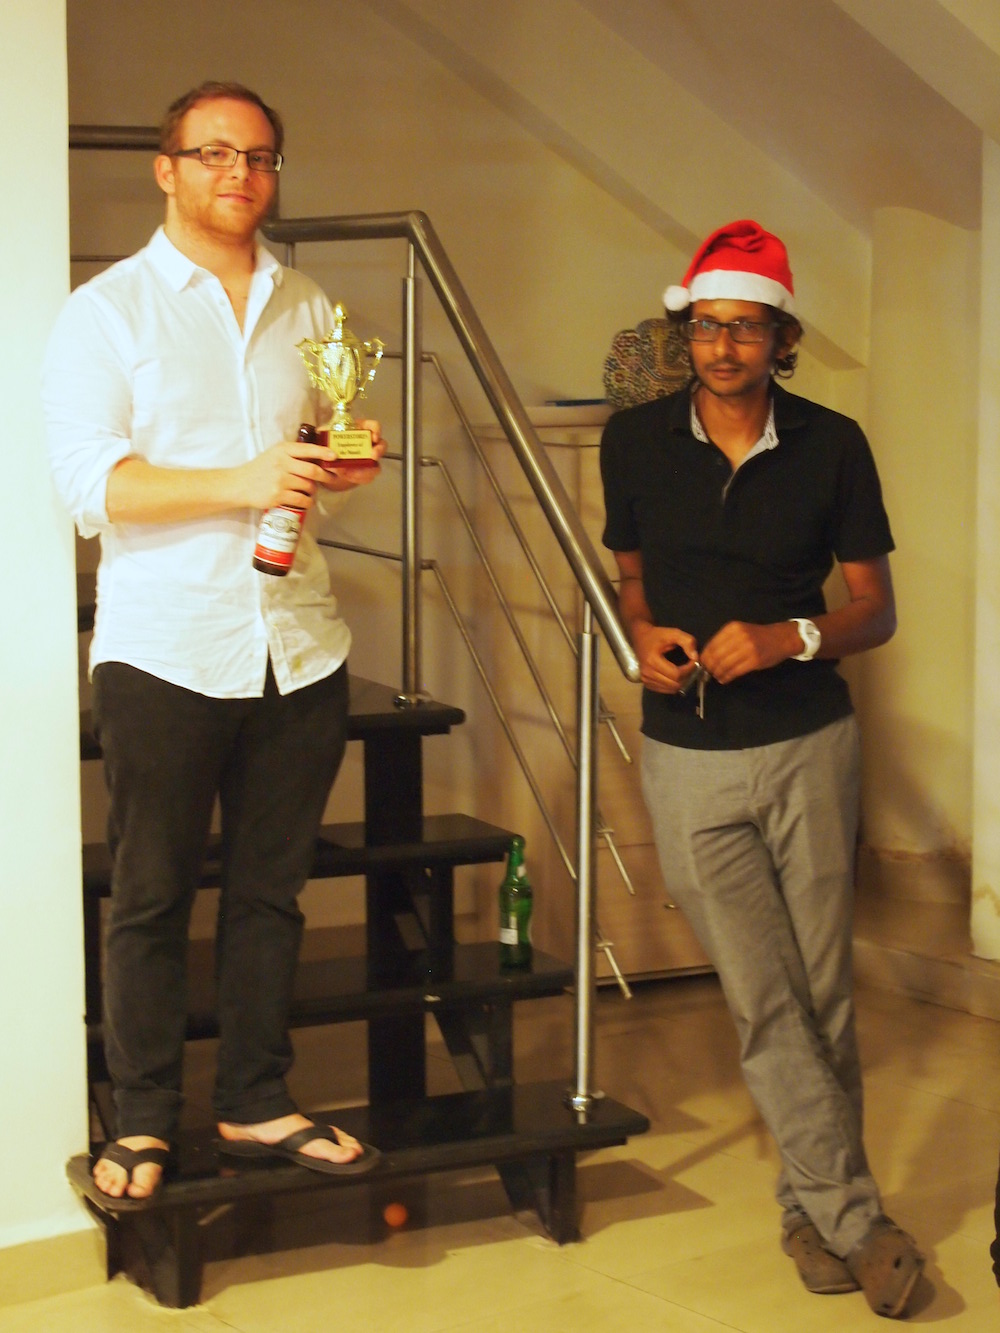 Co-founders Cory York and Ed Chowdhury